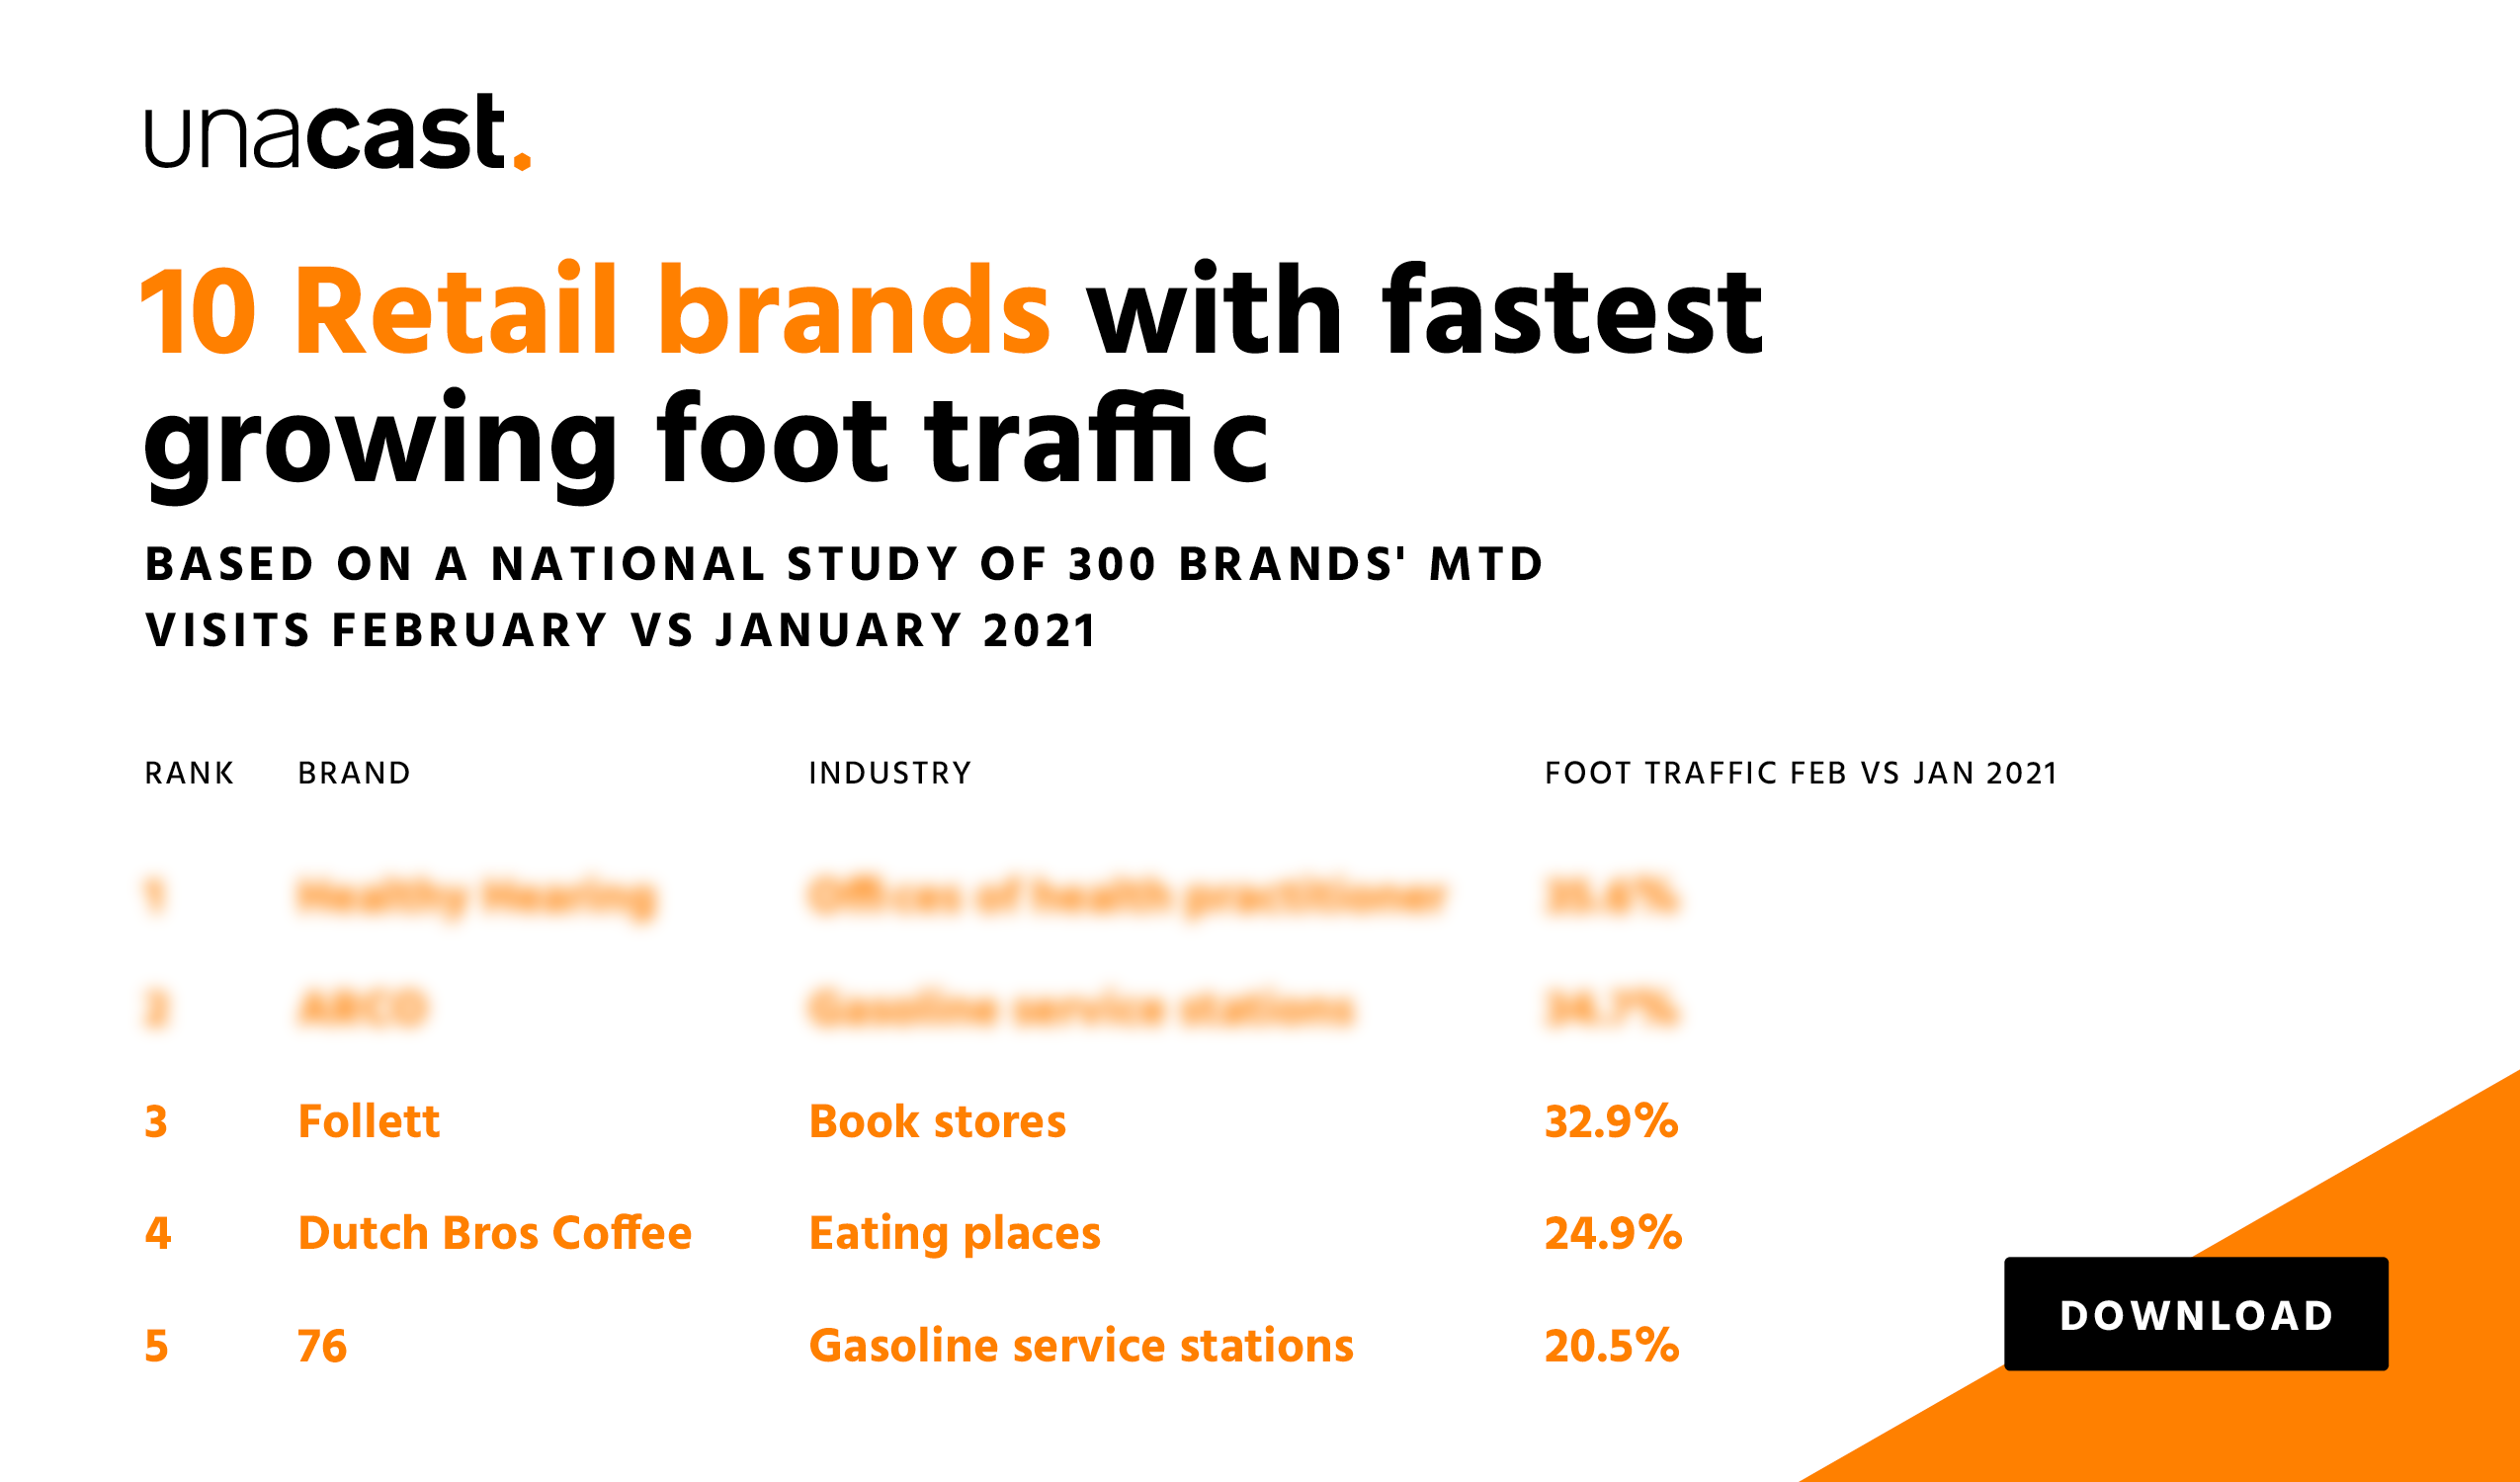 10 Retail Brands with the Fastest Growing Foot Traffic